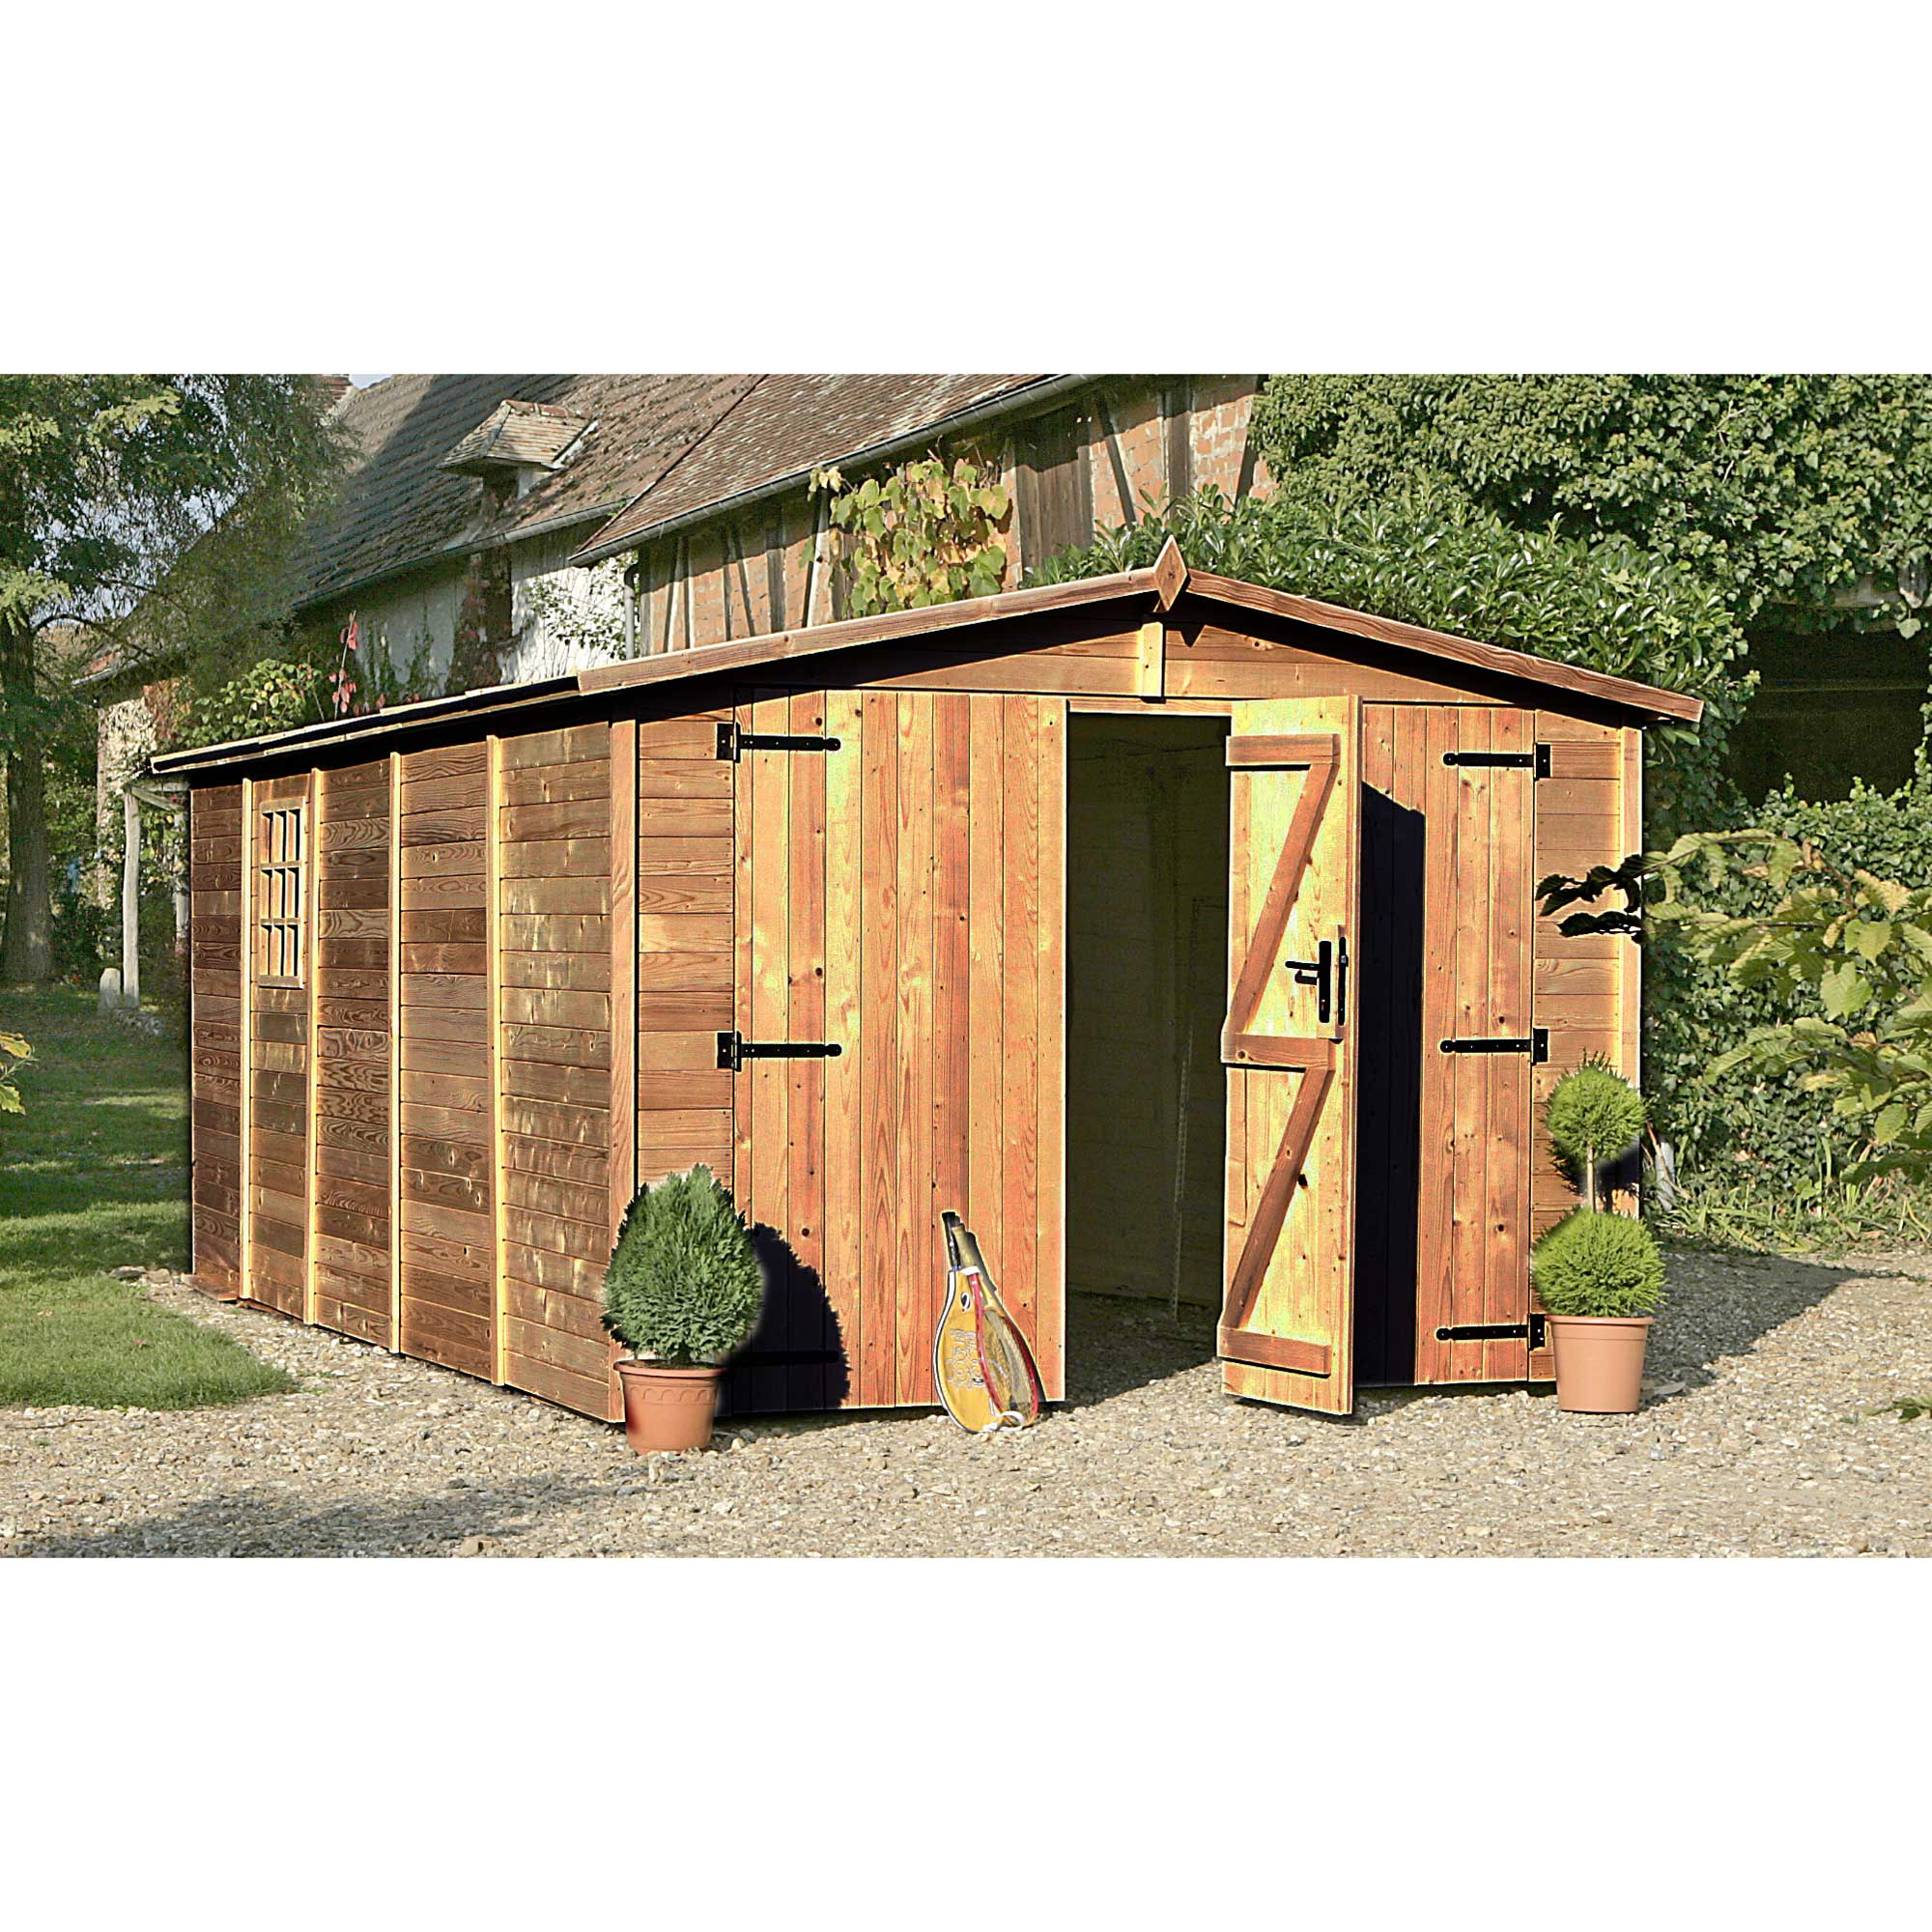 garage de jardin delamaison garage de jardin bois albatros double porte ventes pas. Black Bedroom Furniture Sets. Home Design Ideas